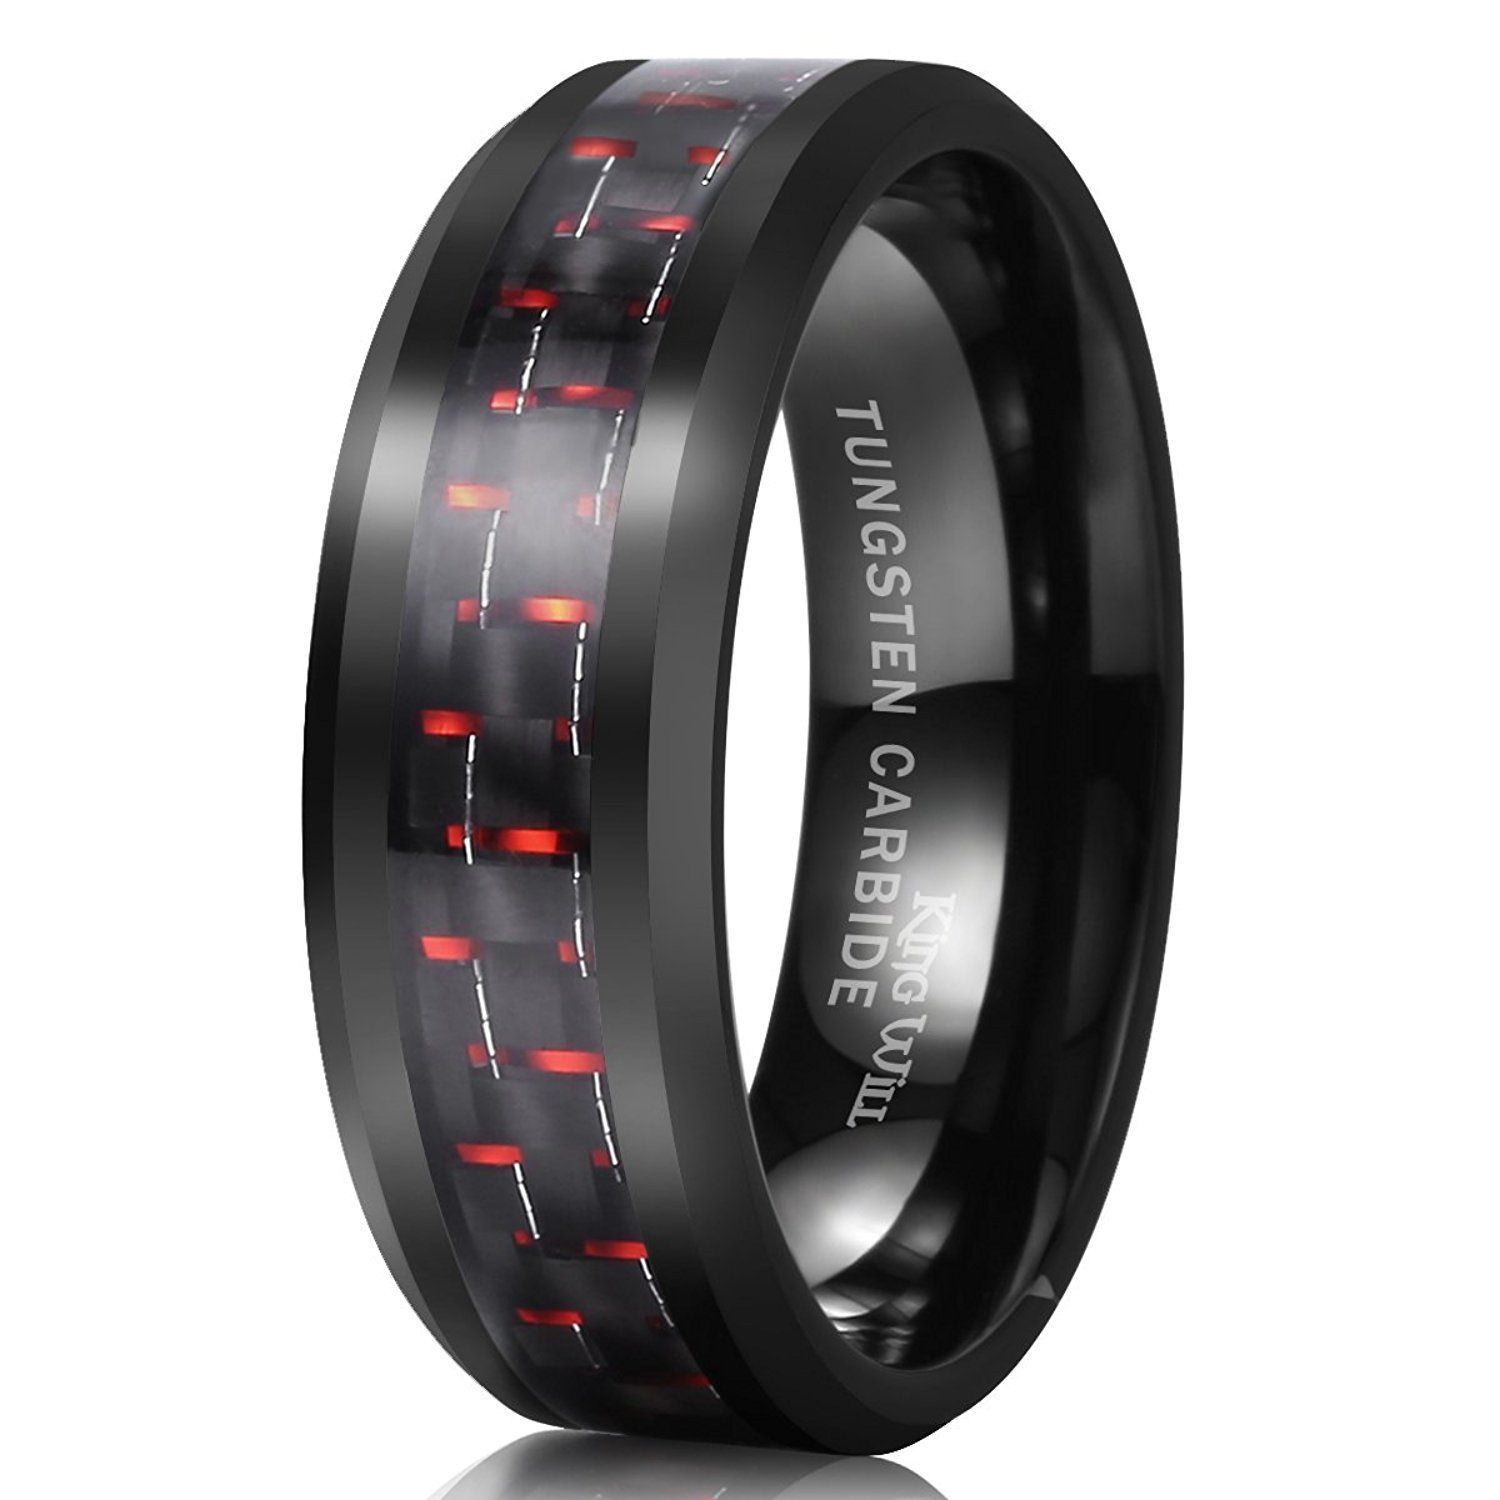 inlay dp polish rings gray men carbon fiber high ring amazon engagement comfort band s w cobalt wedding com fit